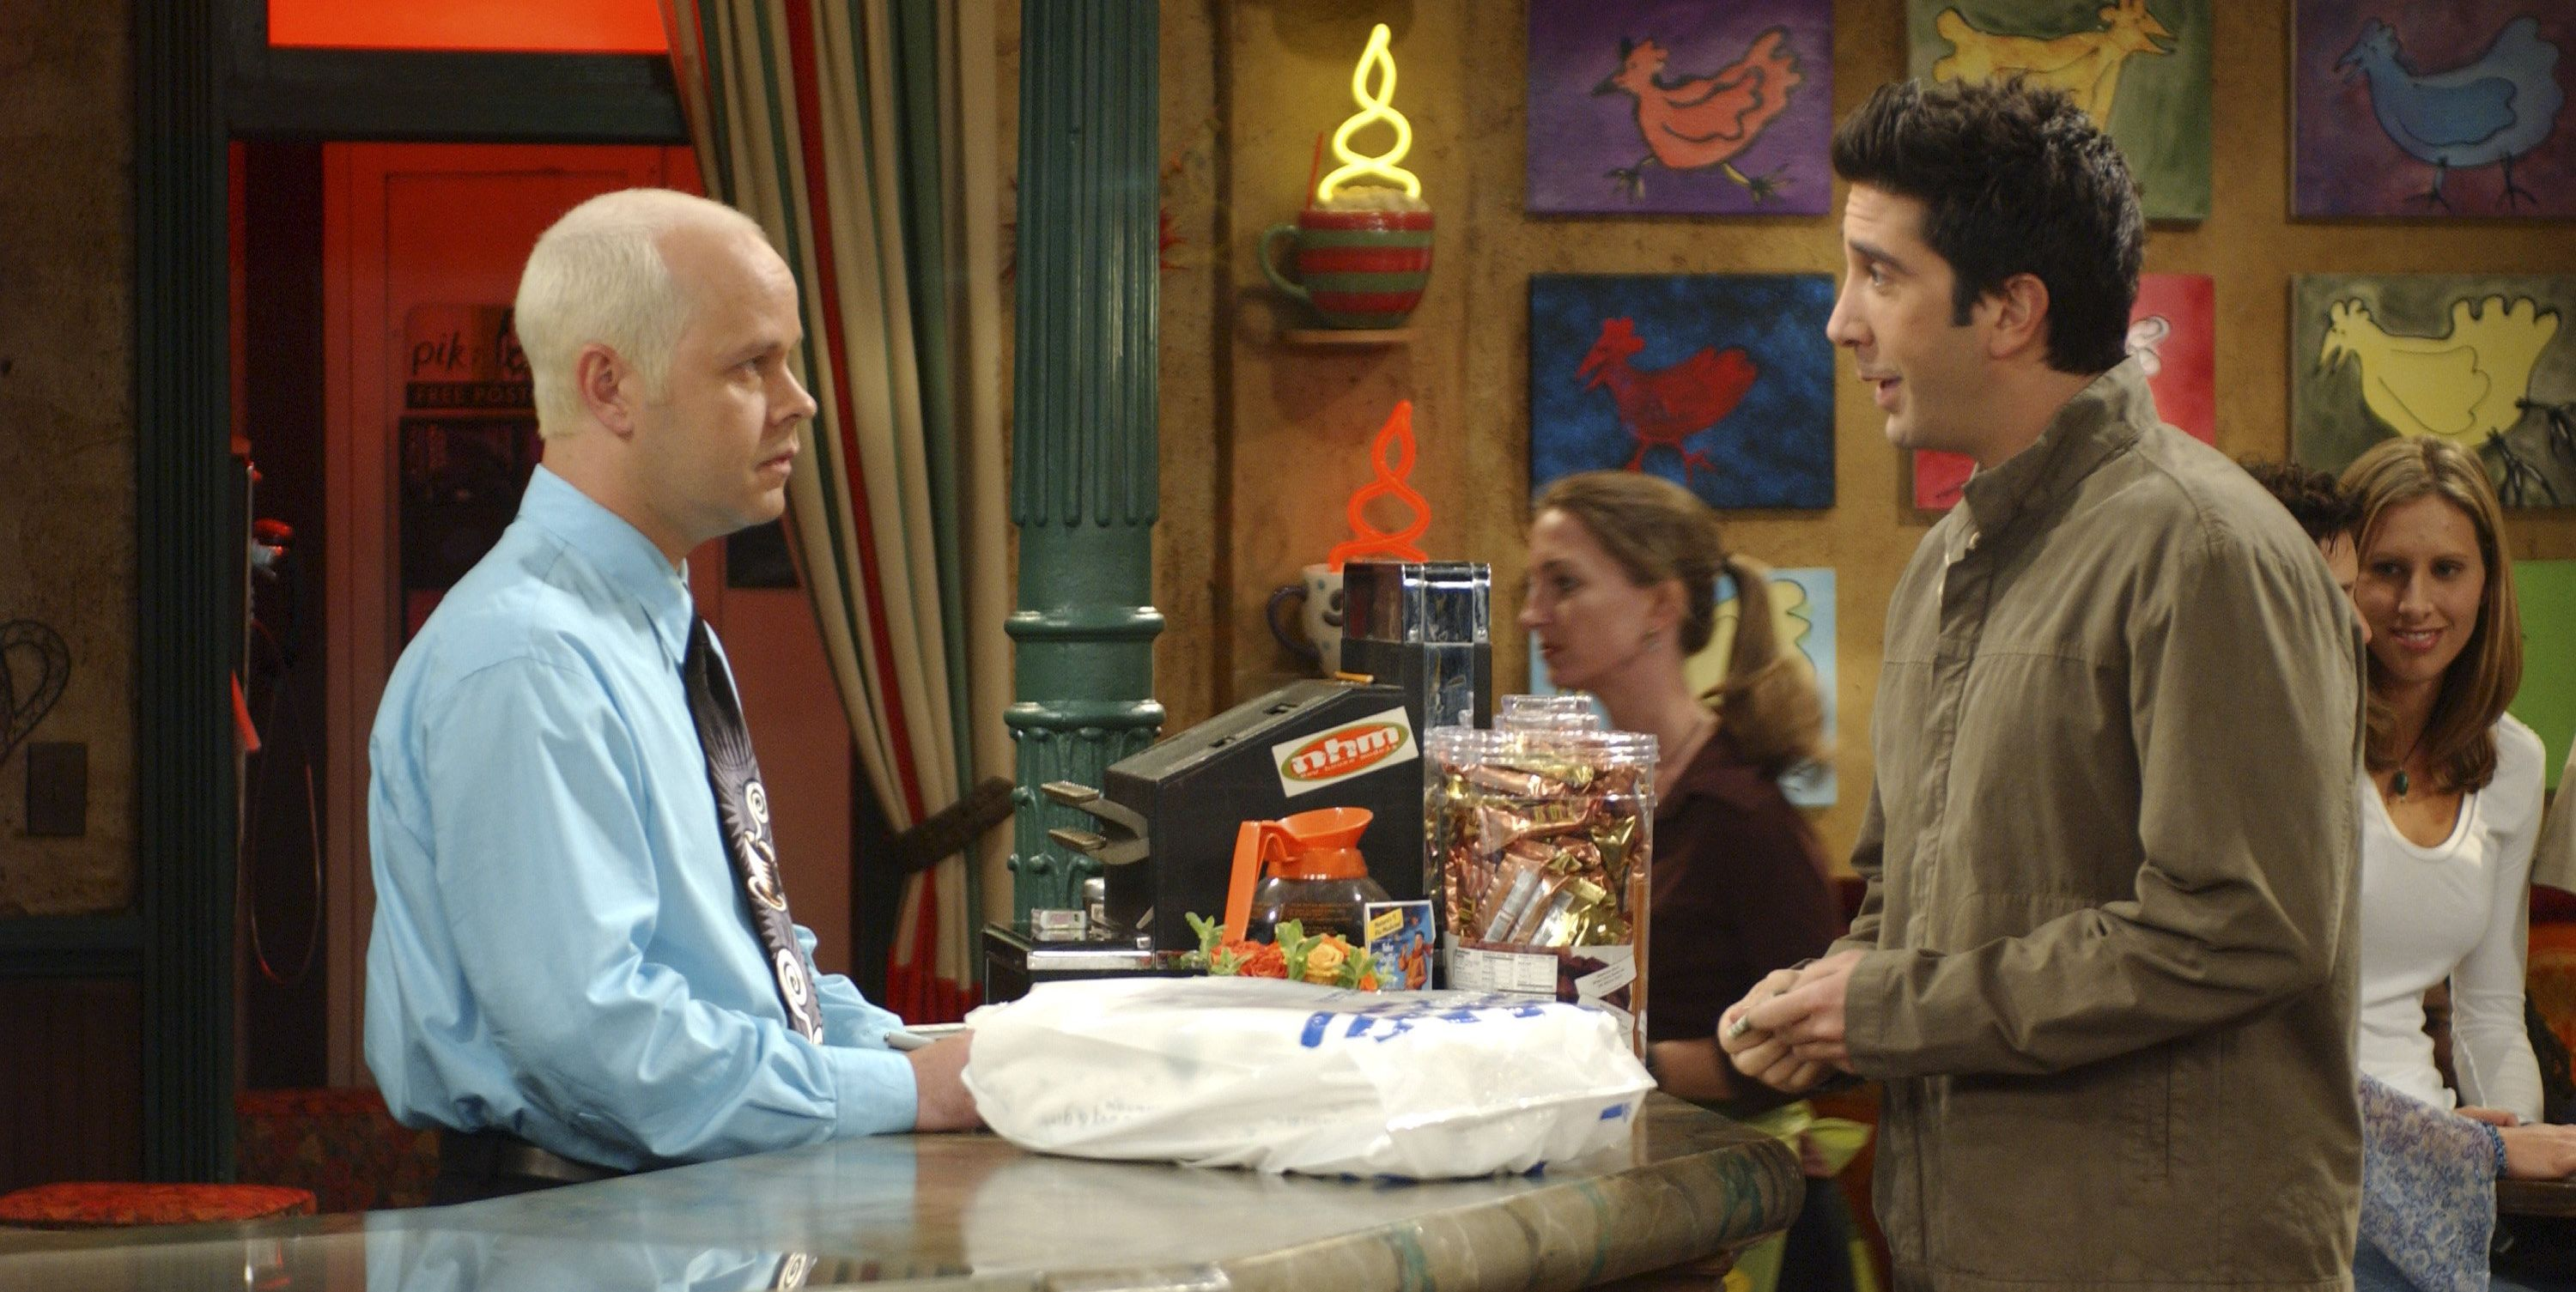 Gunther was a barista IRL.